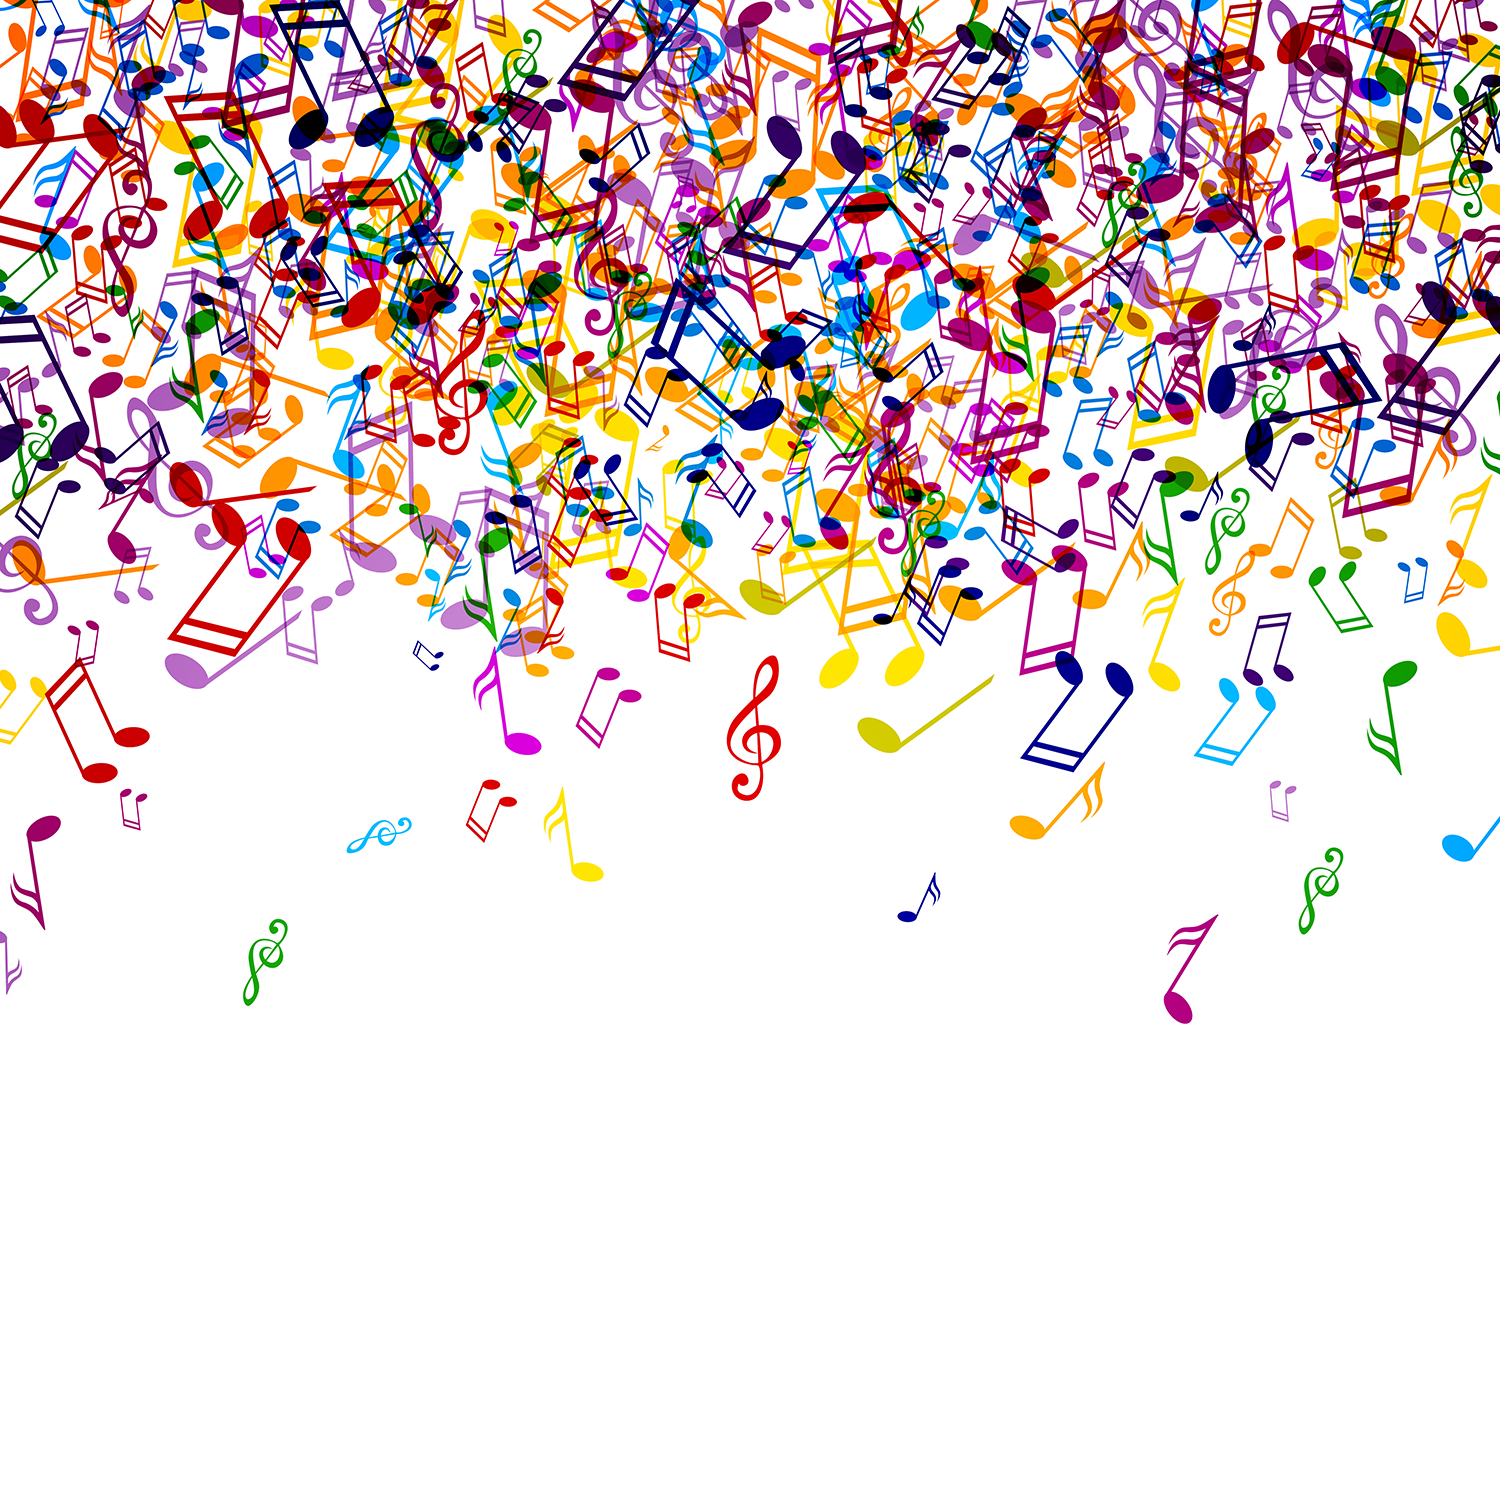 music effect on brain and mind relationship